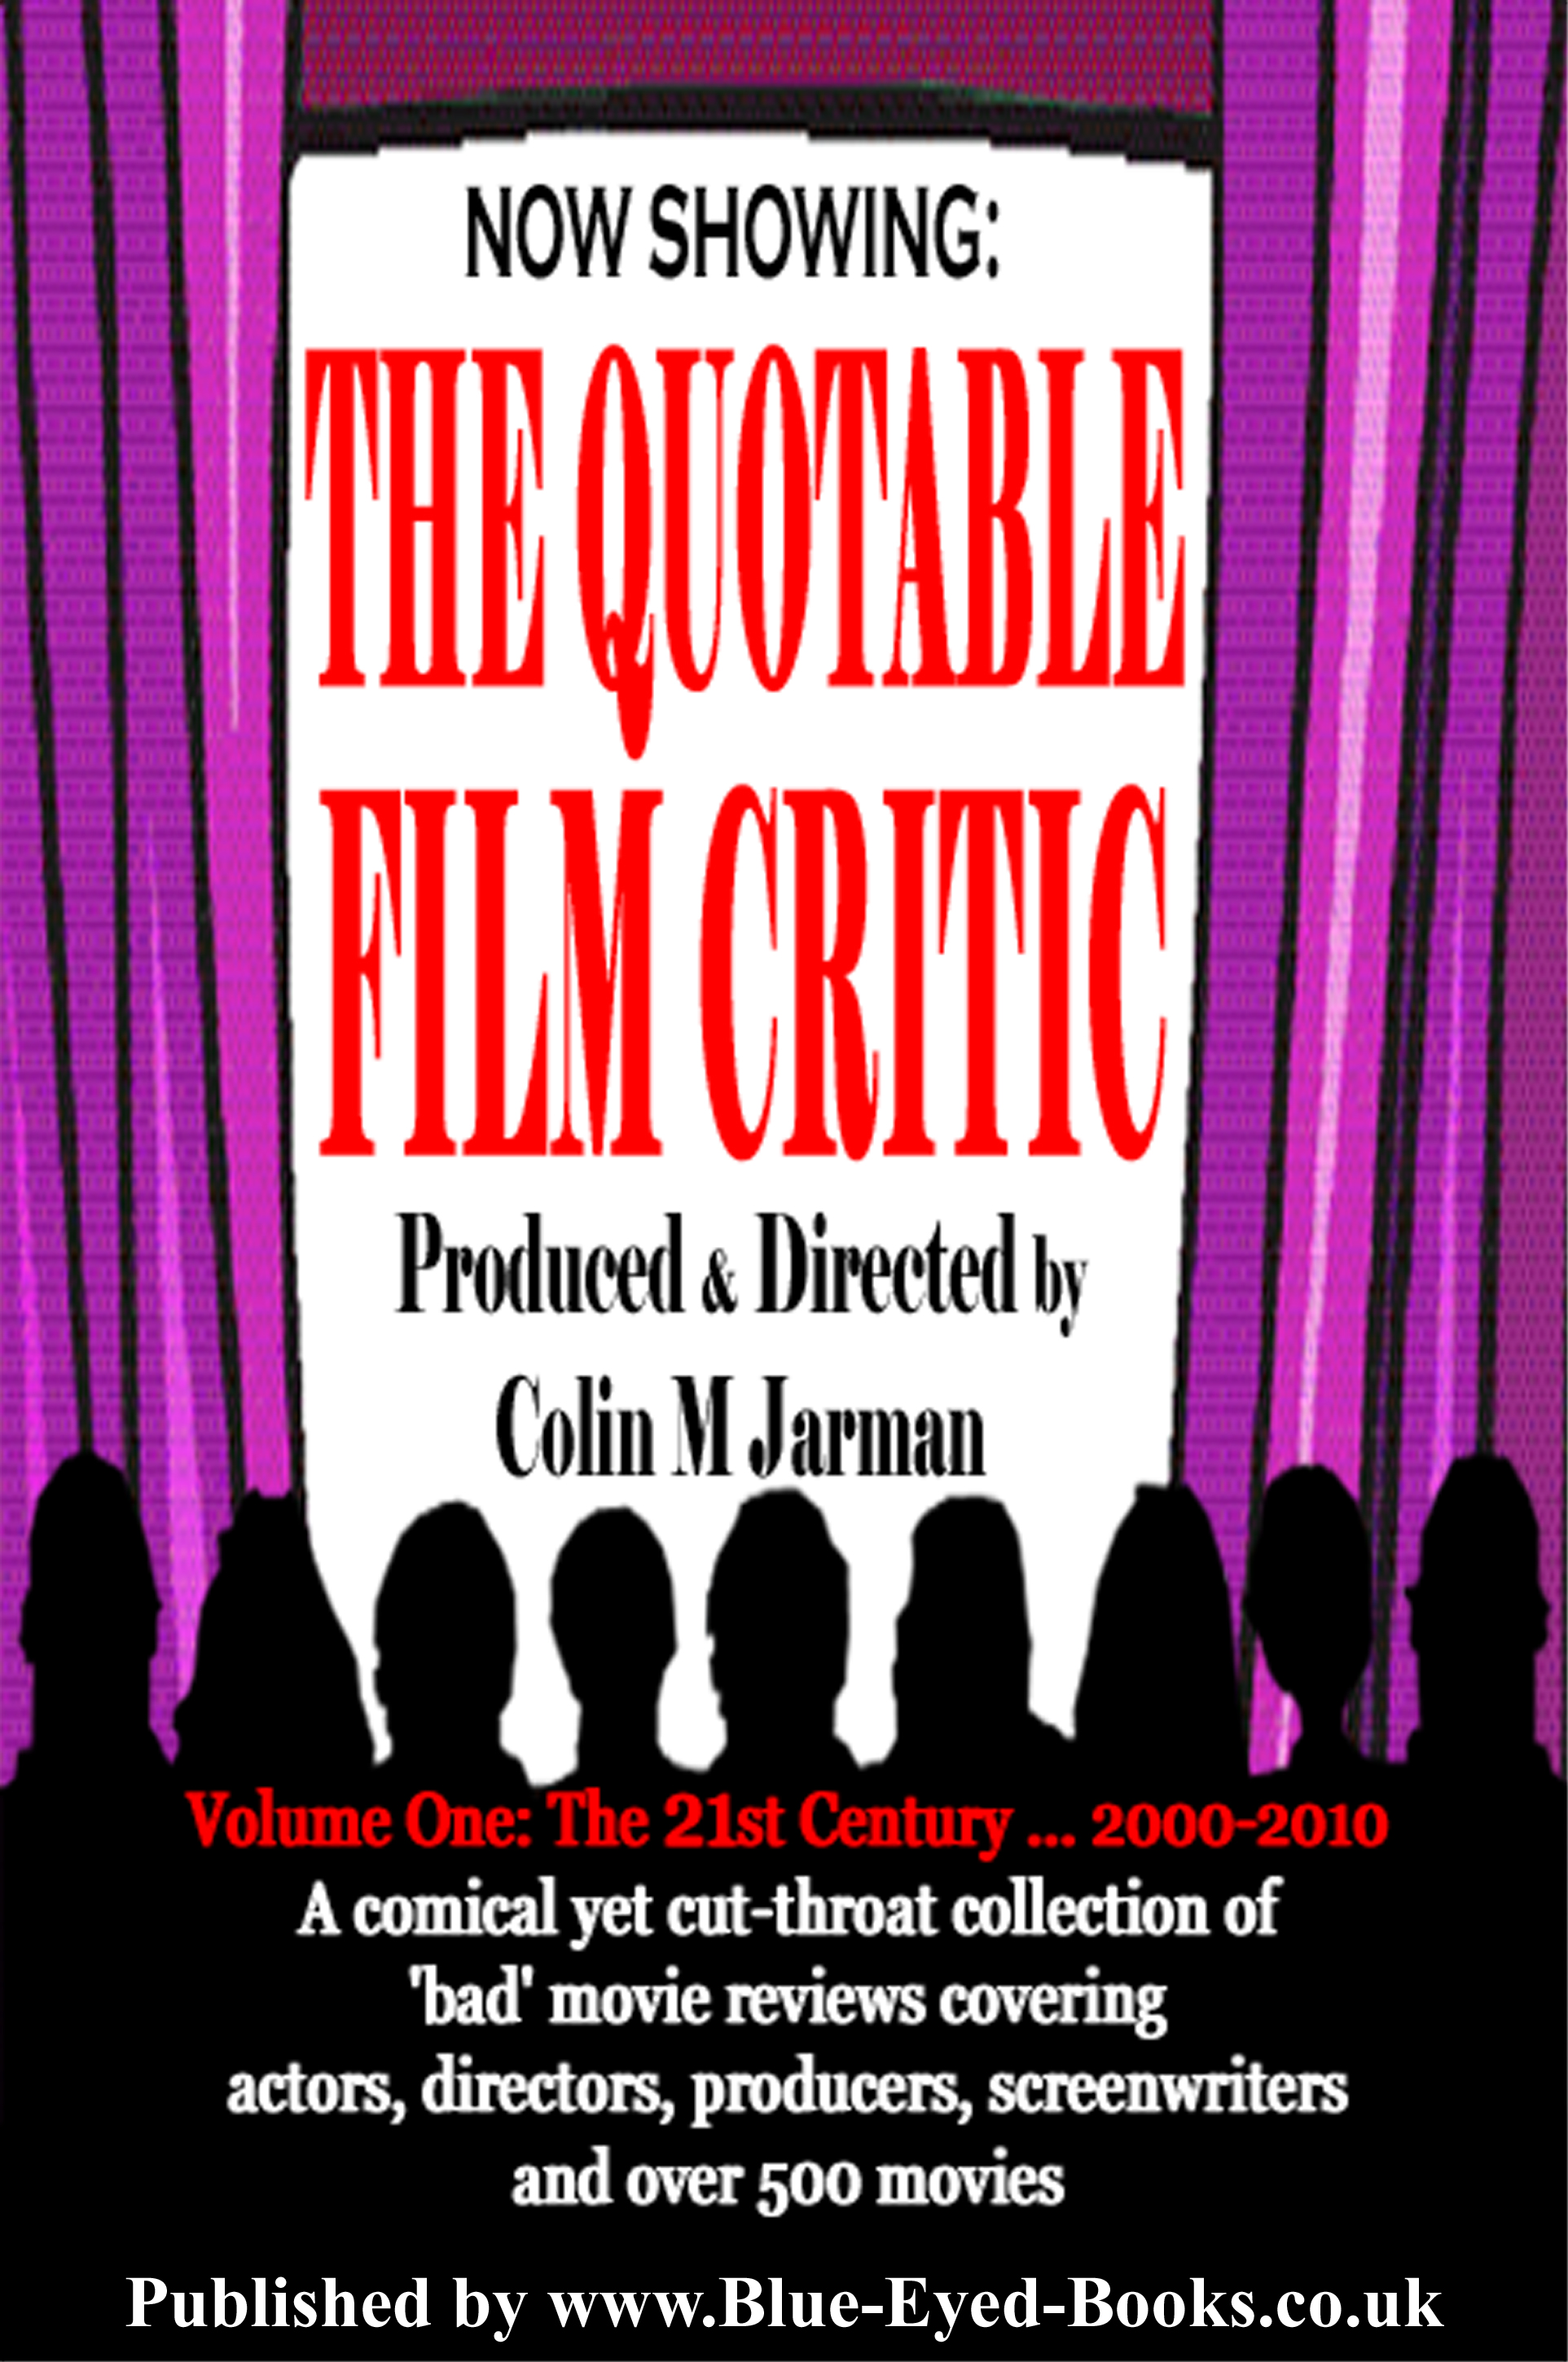 The Quotable Film Critic - Bad Movie Reviews Vol One 2000-2010